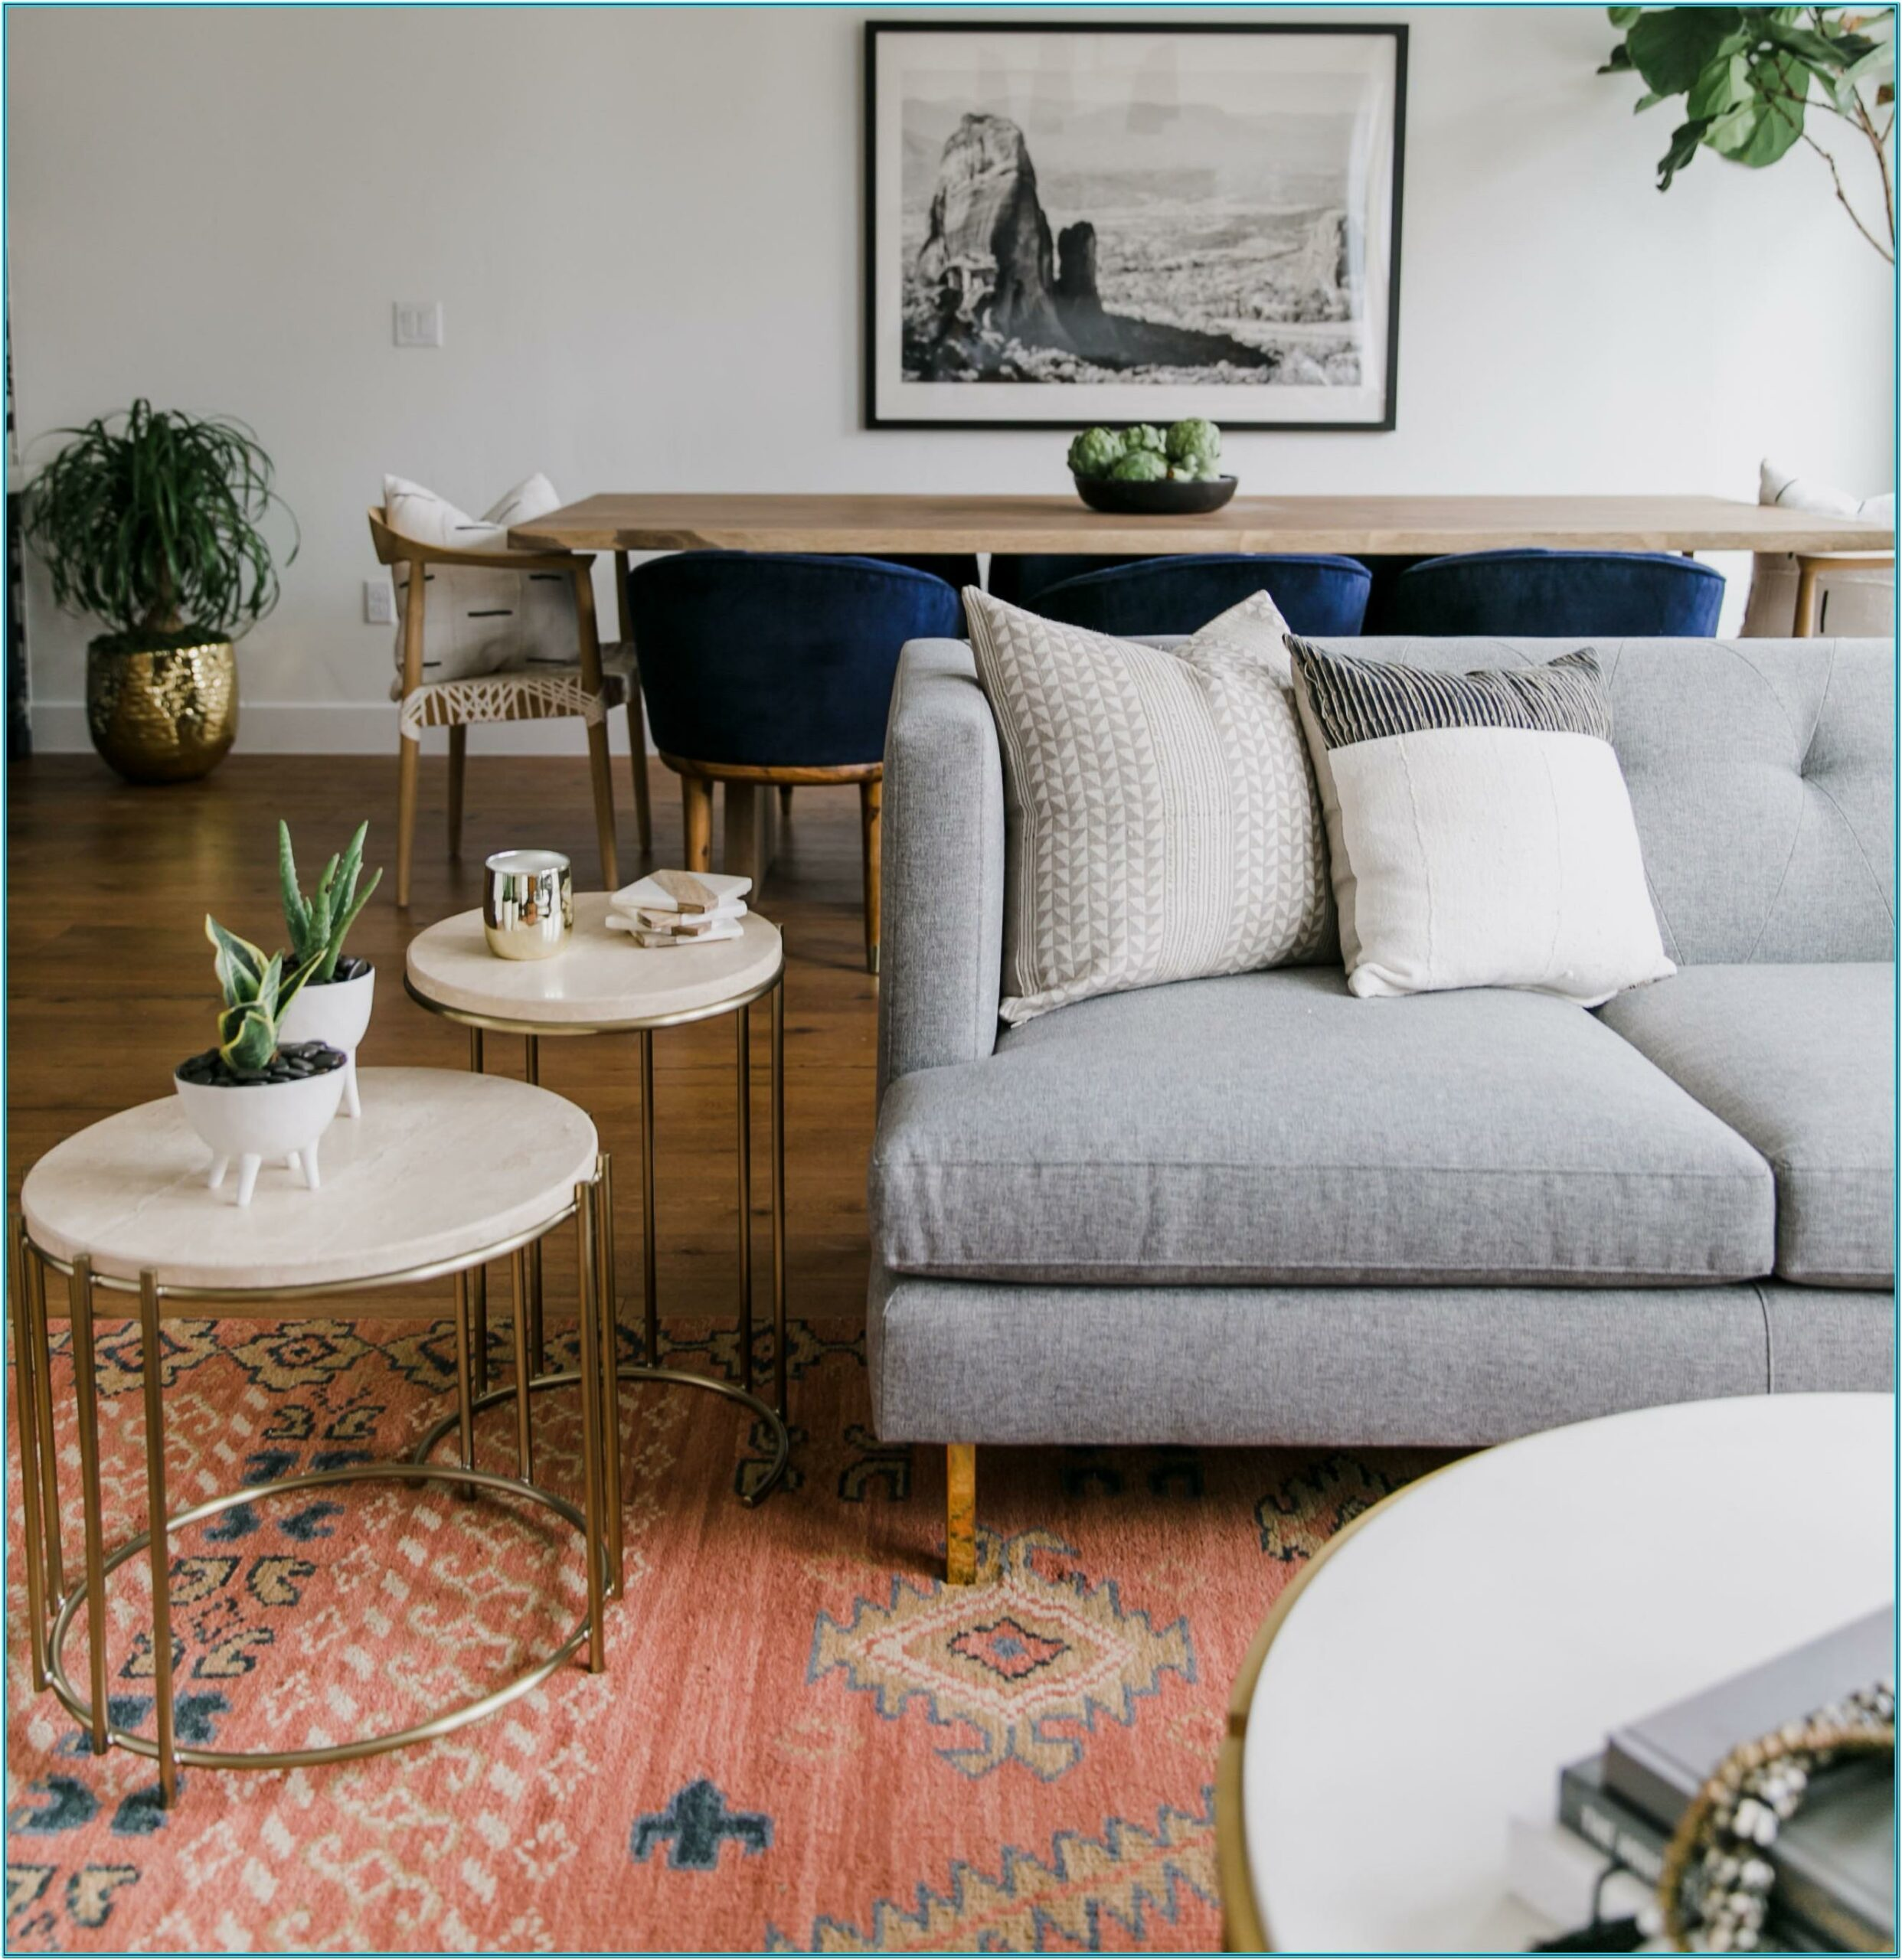 Photos Of Vintage Decorated Living Rooms